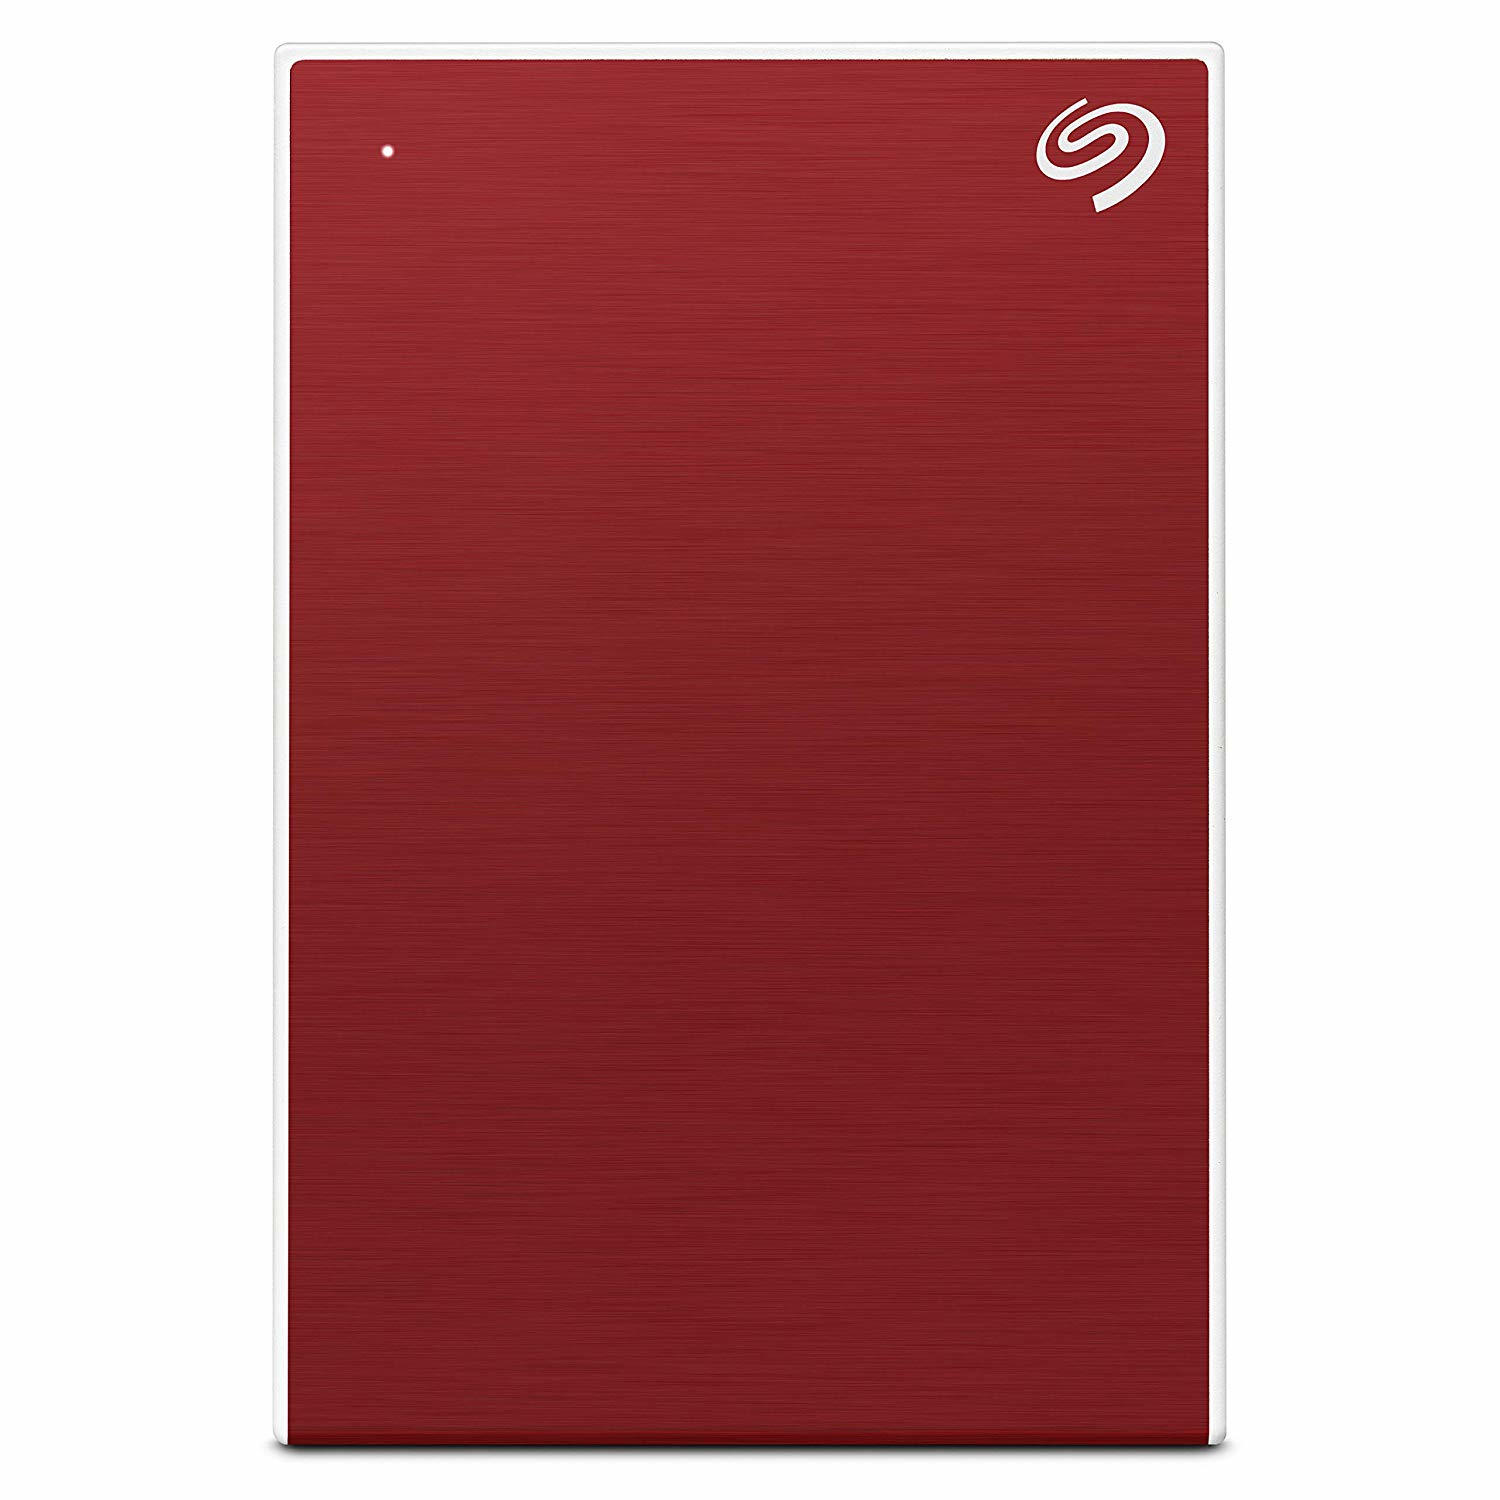 Seagate Backup Plus Slim disco duro externo 2000 GB Rojo